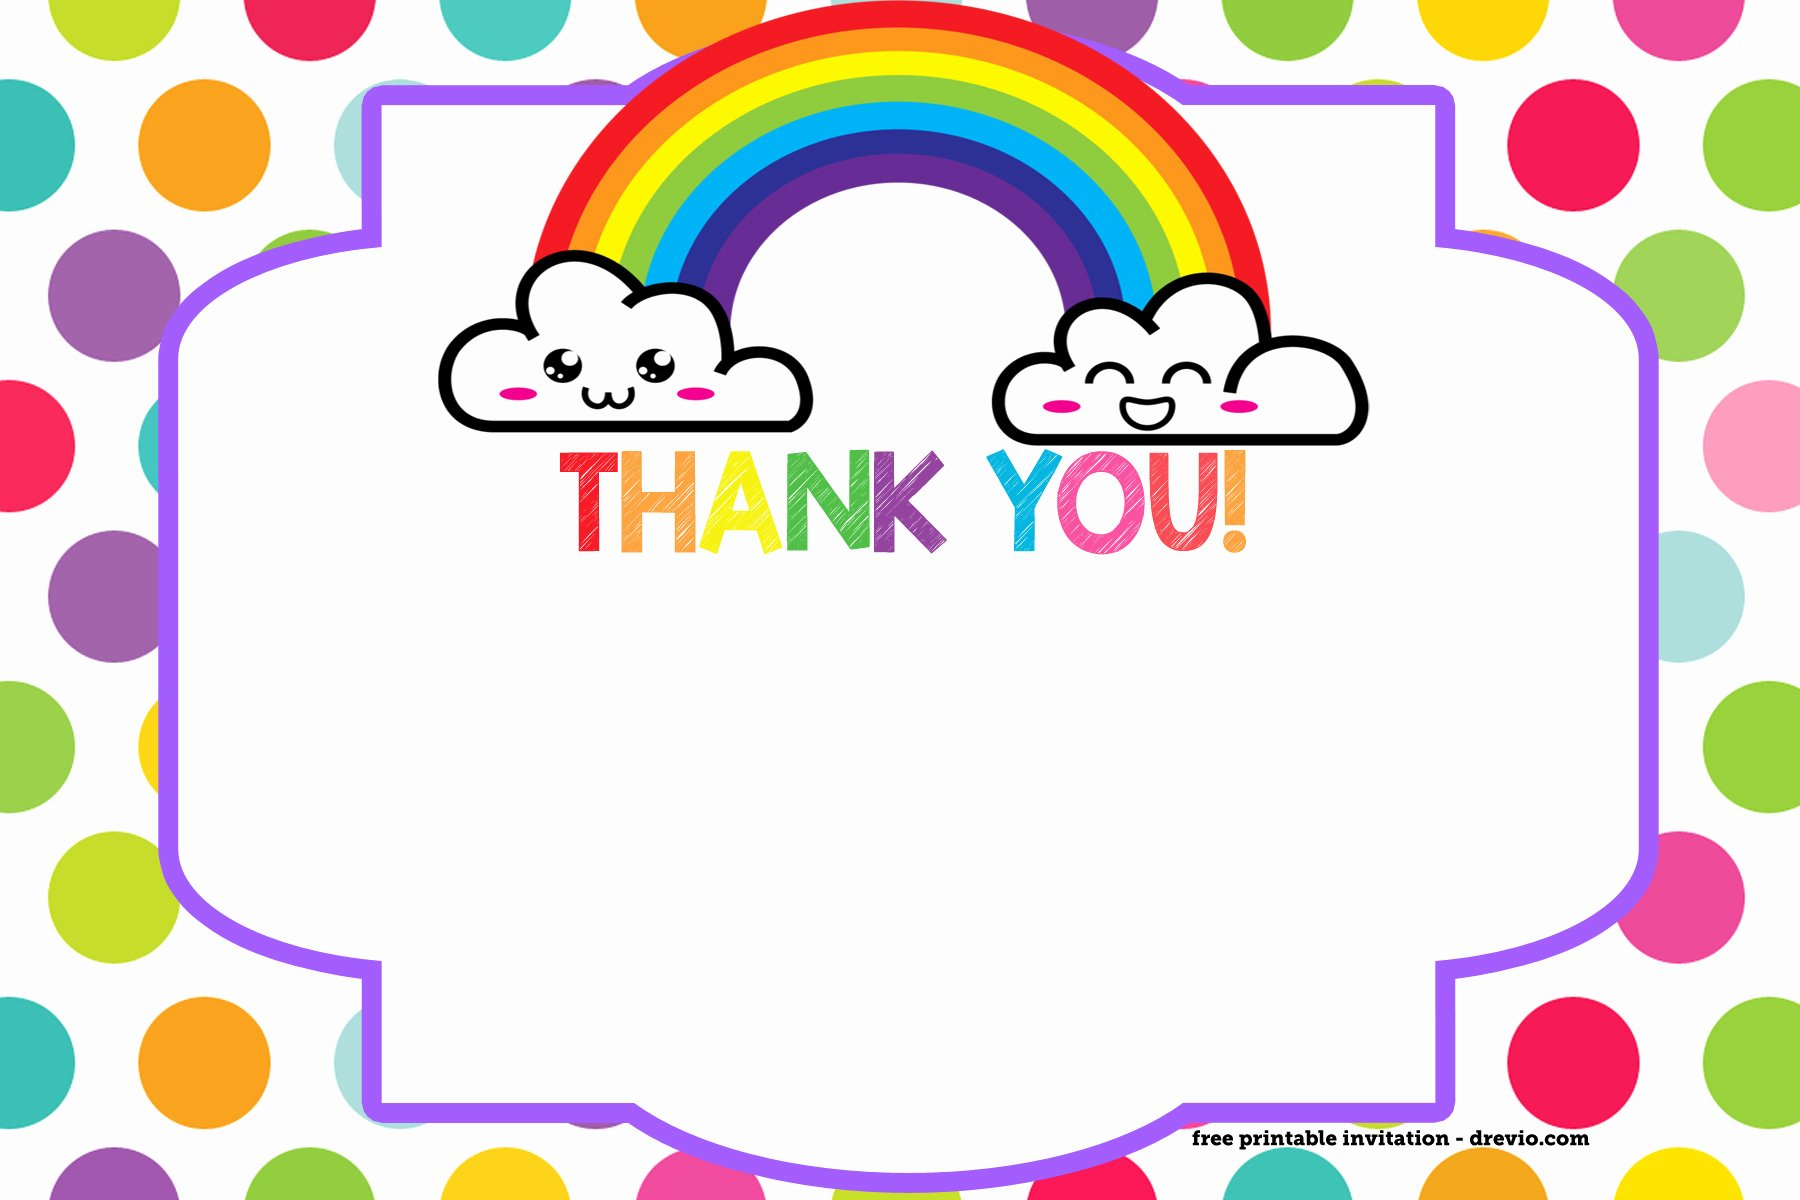 Free Thank You Cards Templates Unique Free Printable Rainbow Invitation Template Thank You